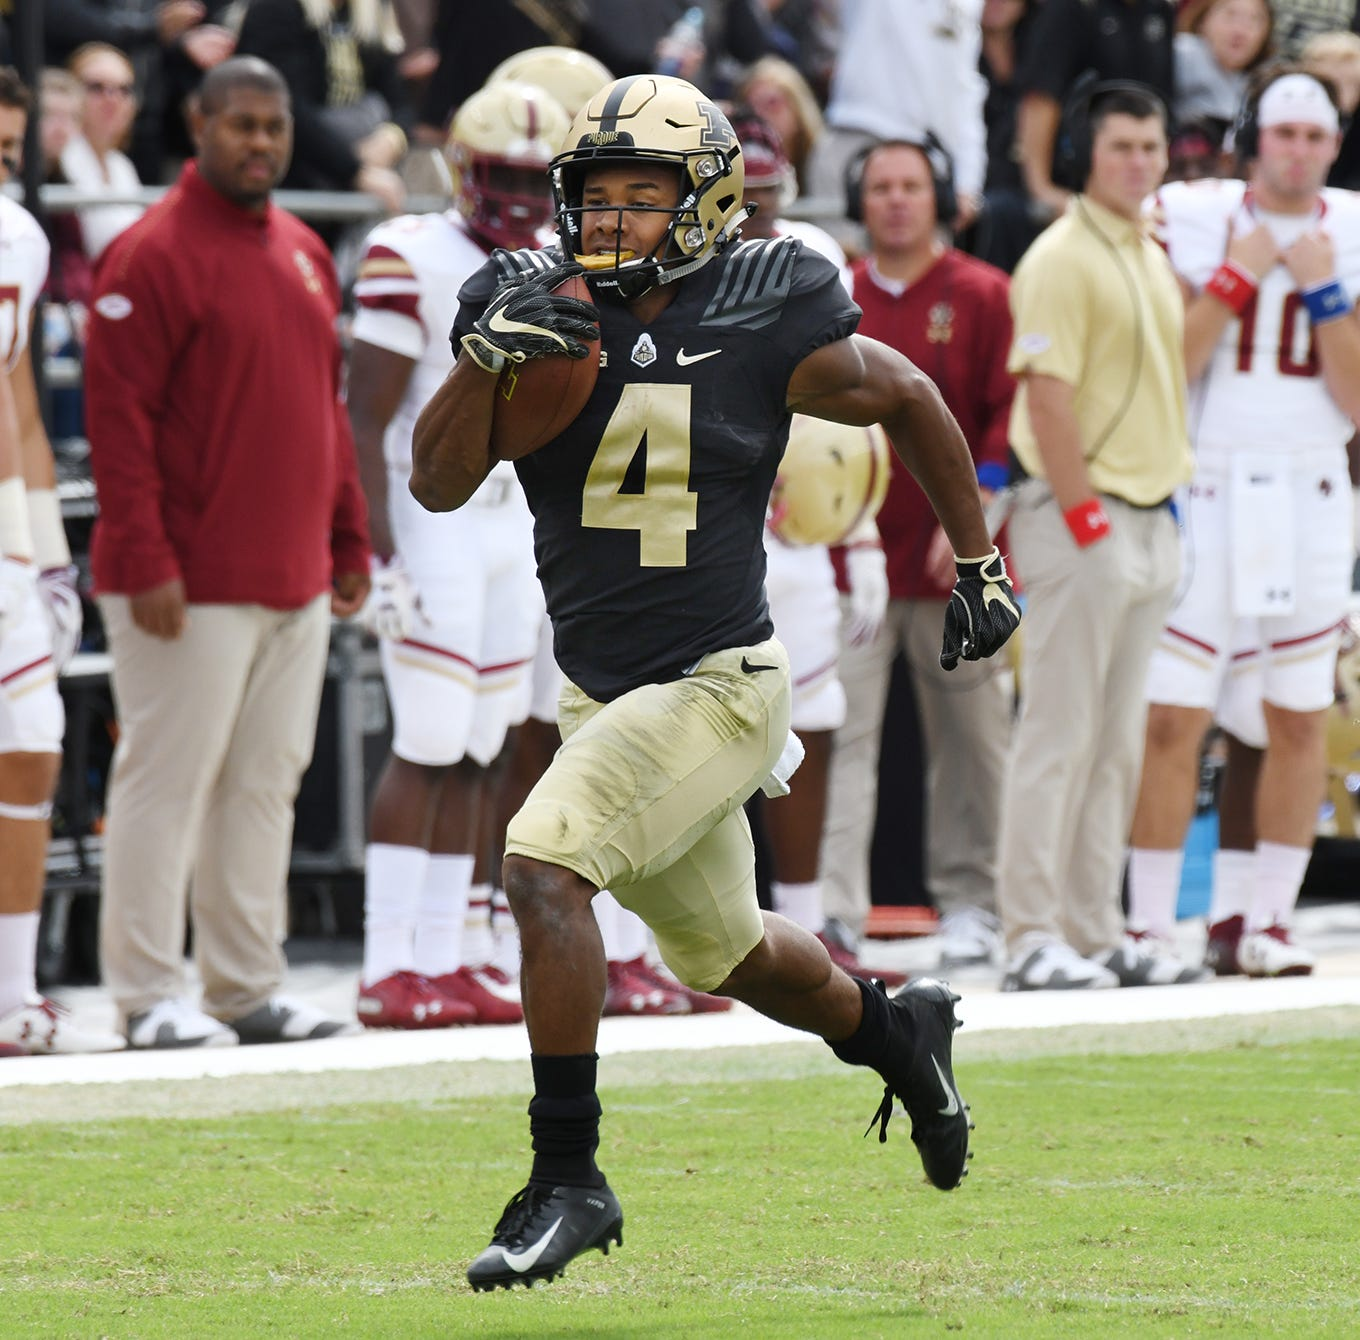 Purdue 30, Boston College 13: Grading the Boilermakers